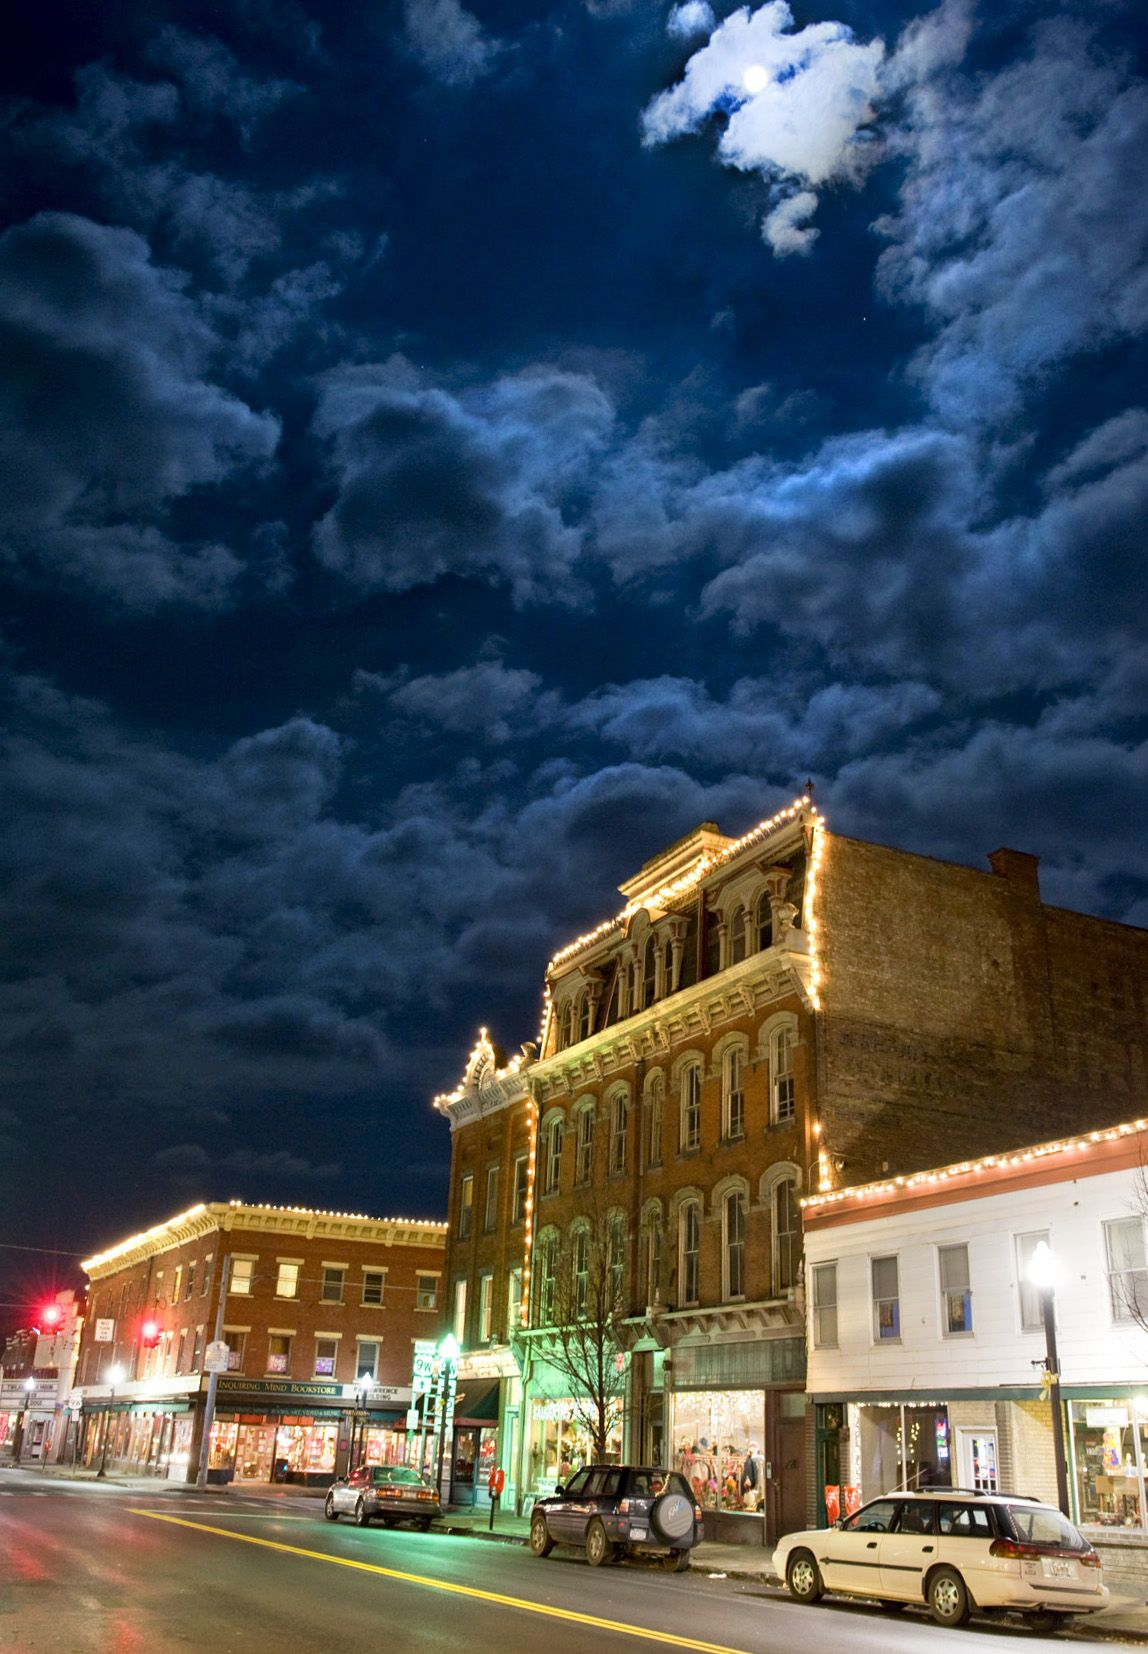 Saugerties Nocturne by Dion Ogust